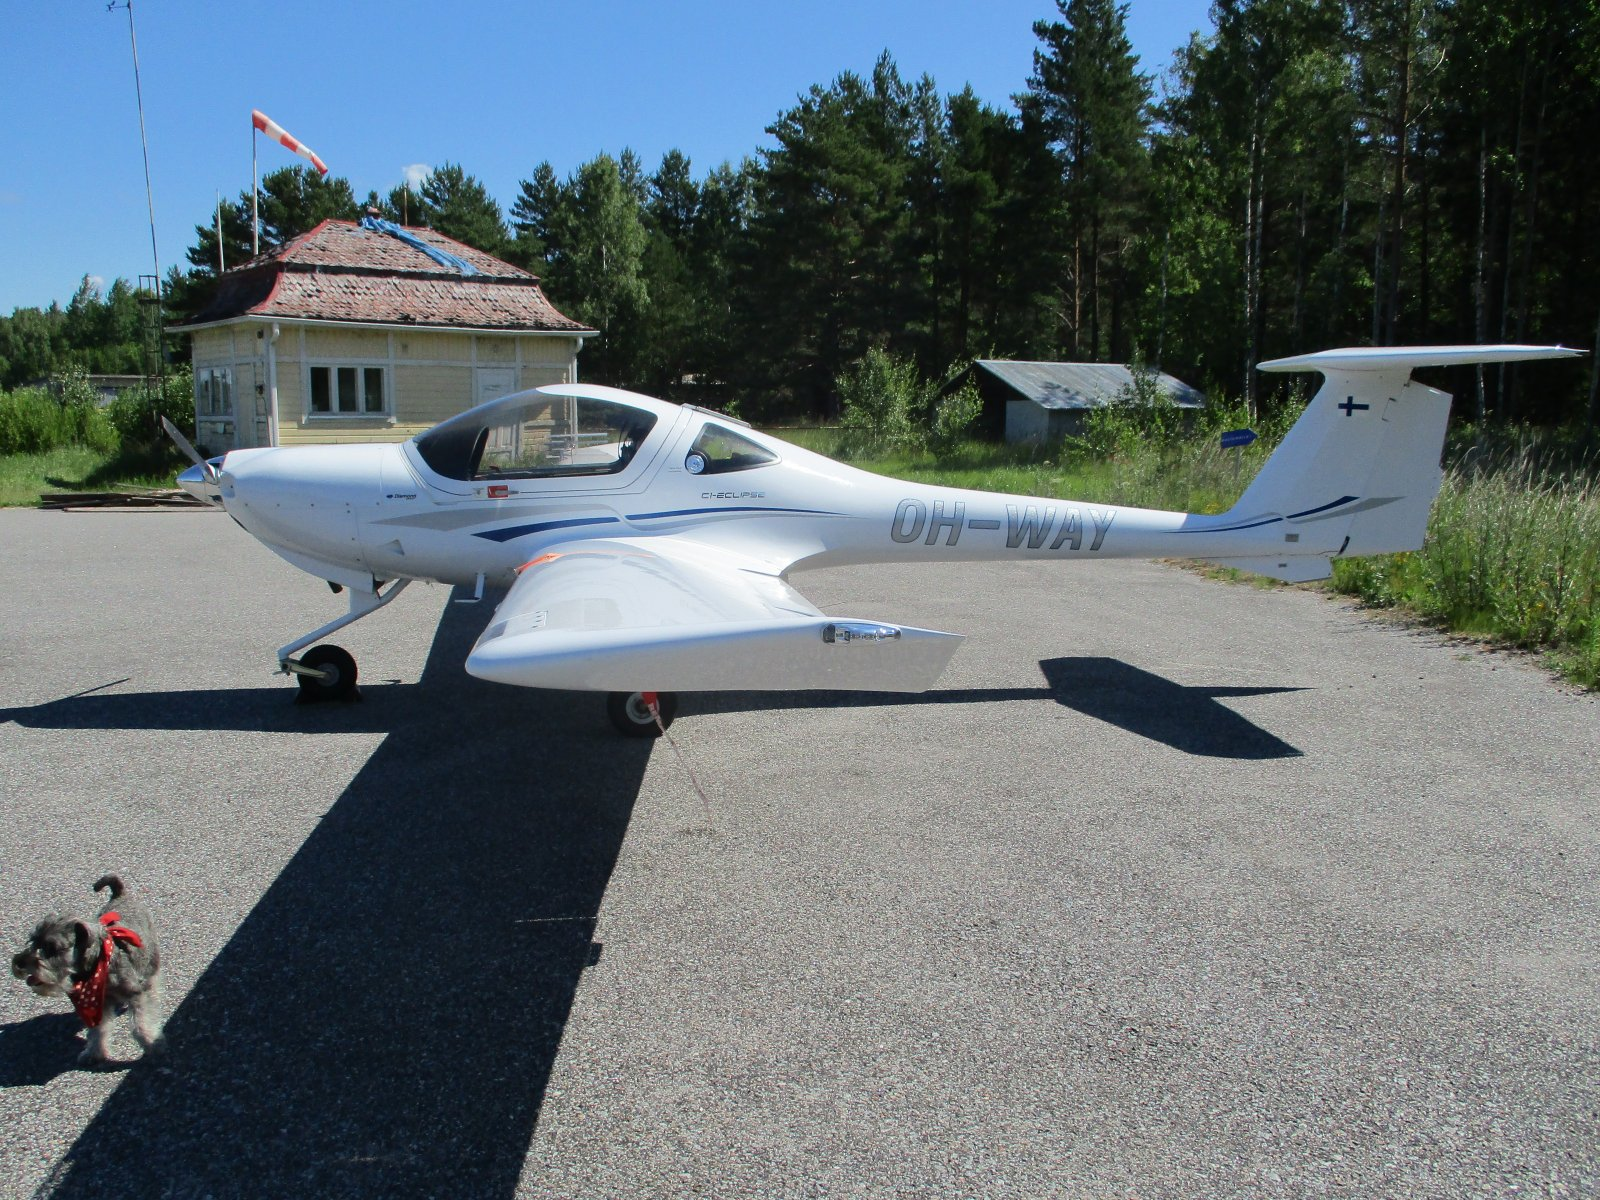 Diamond DA20-C1 Eclipse OH-WAY EFHN 2018-07-08